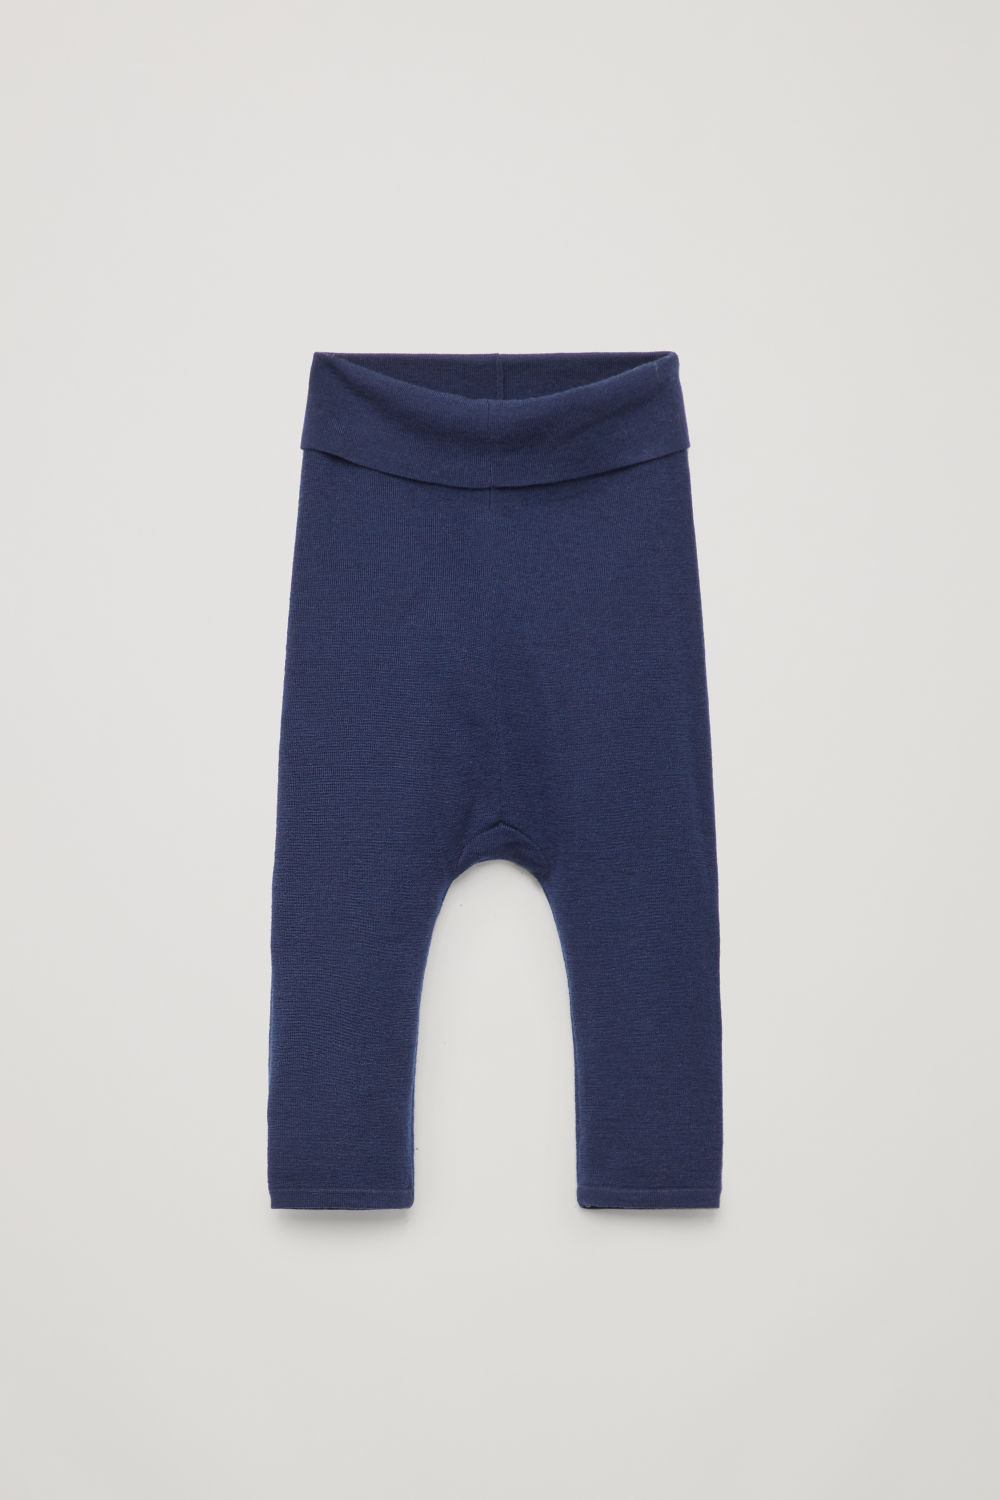 MERINO-WOOL KNIT TROUSERS